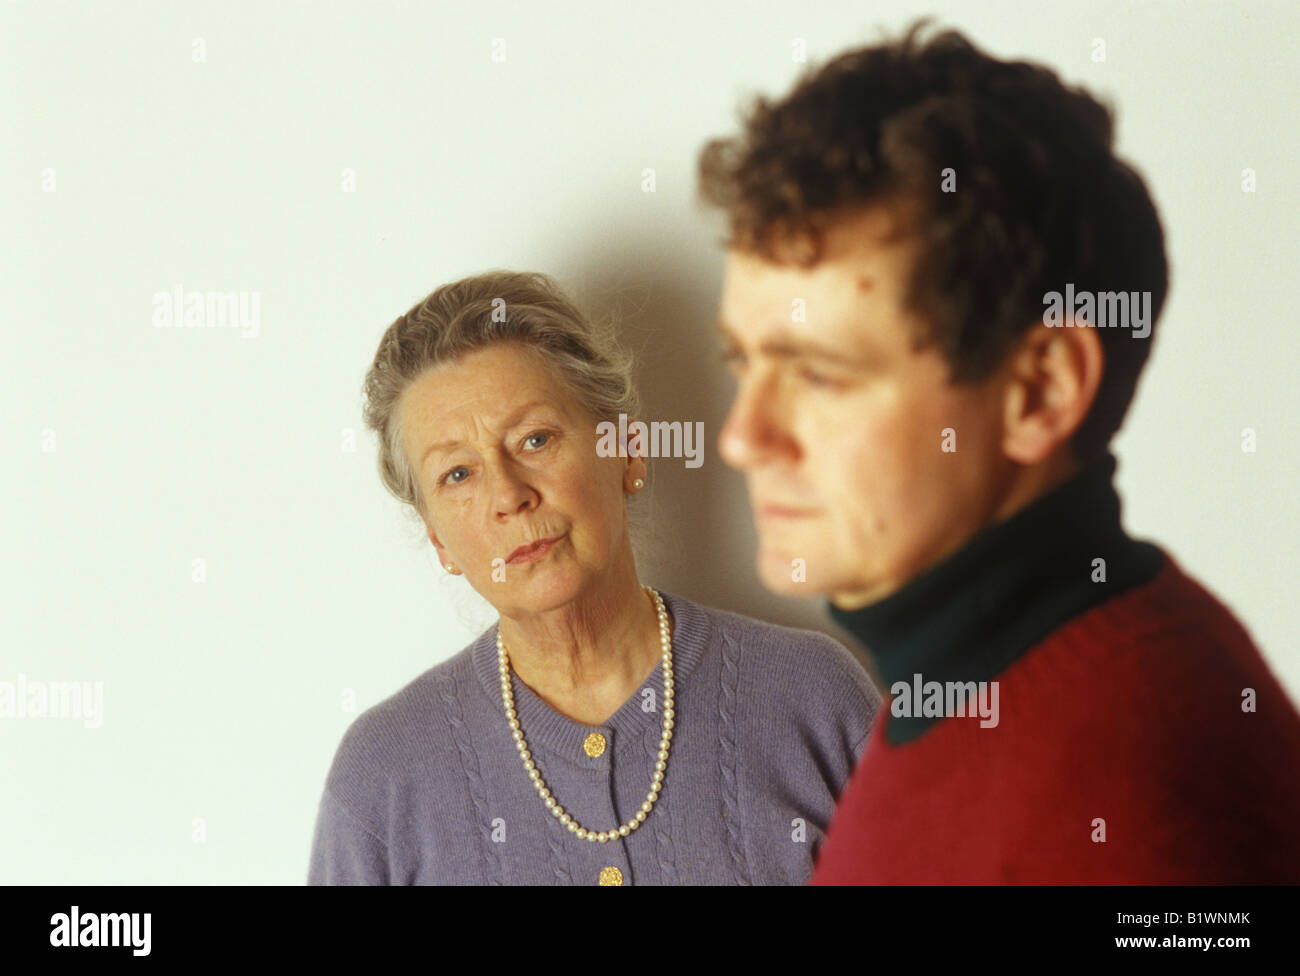 older woman looking worried at younger man - Stock Image